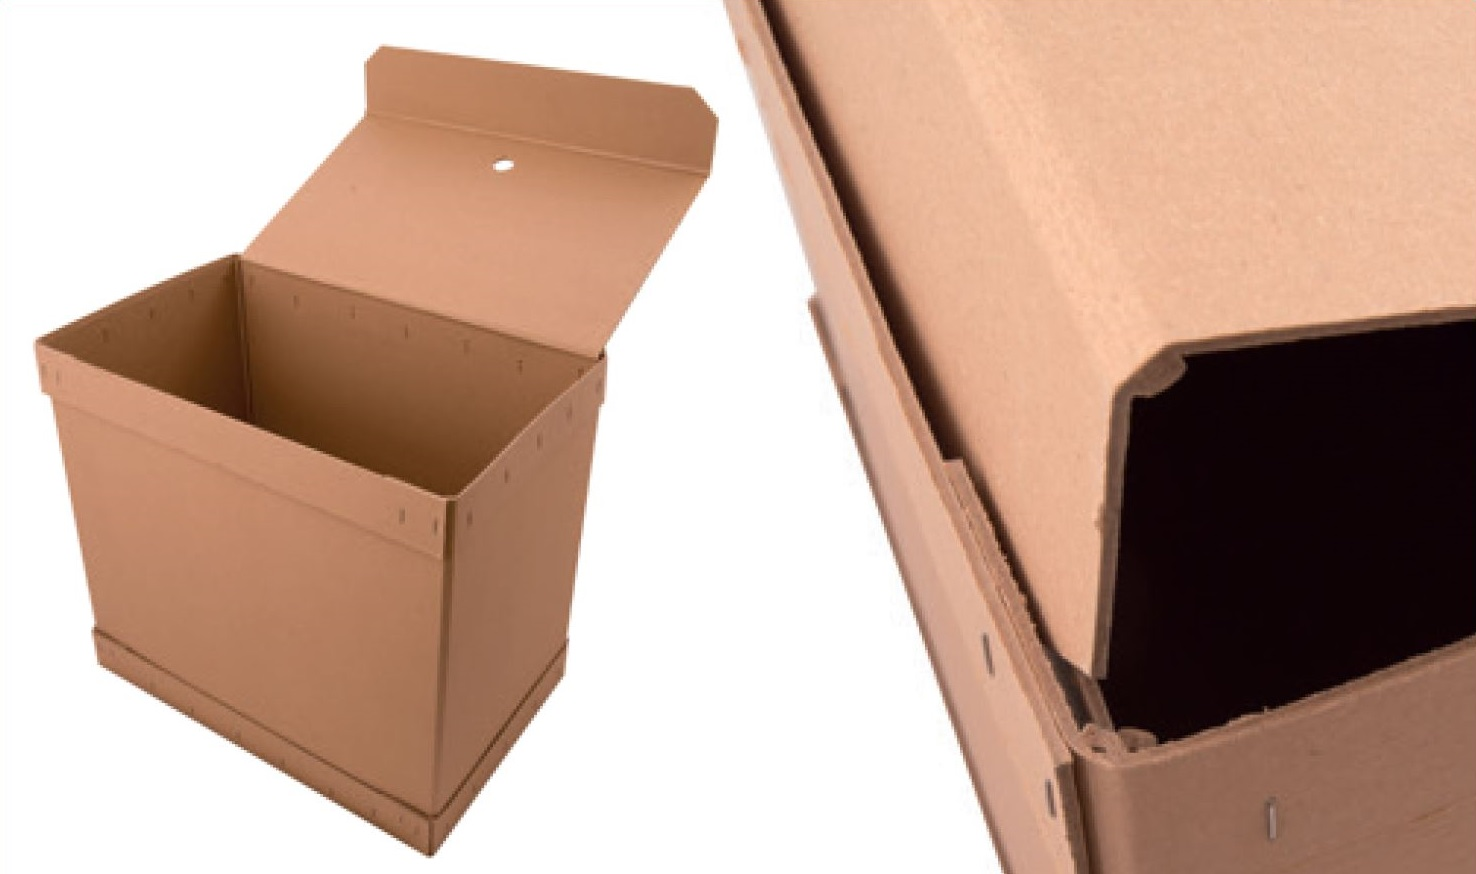 Transport box with lid, stapled